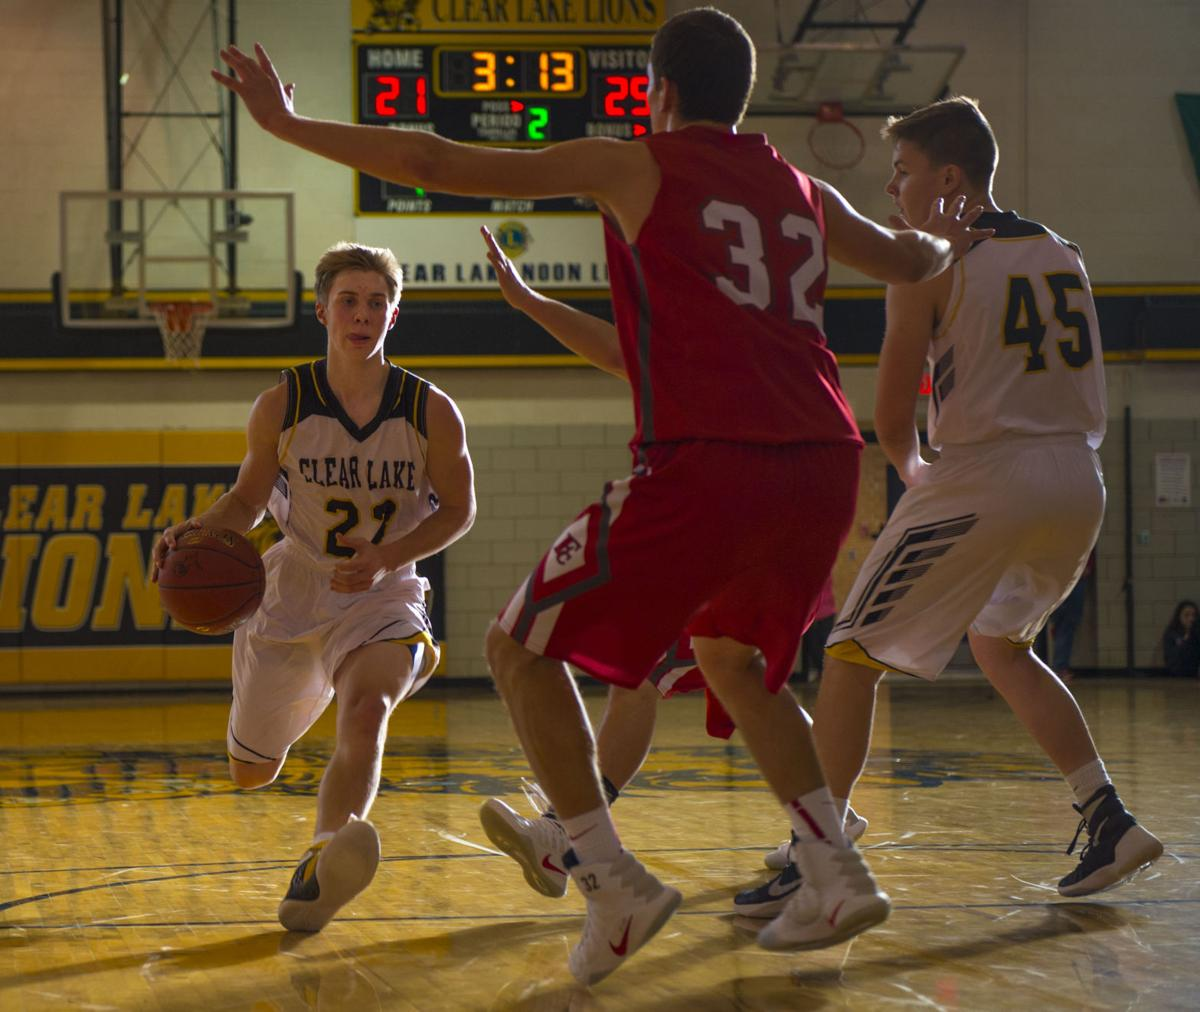 G-B-Bball Clear Lake vs. Forest City 3